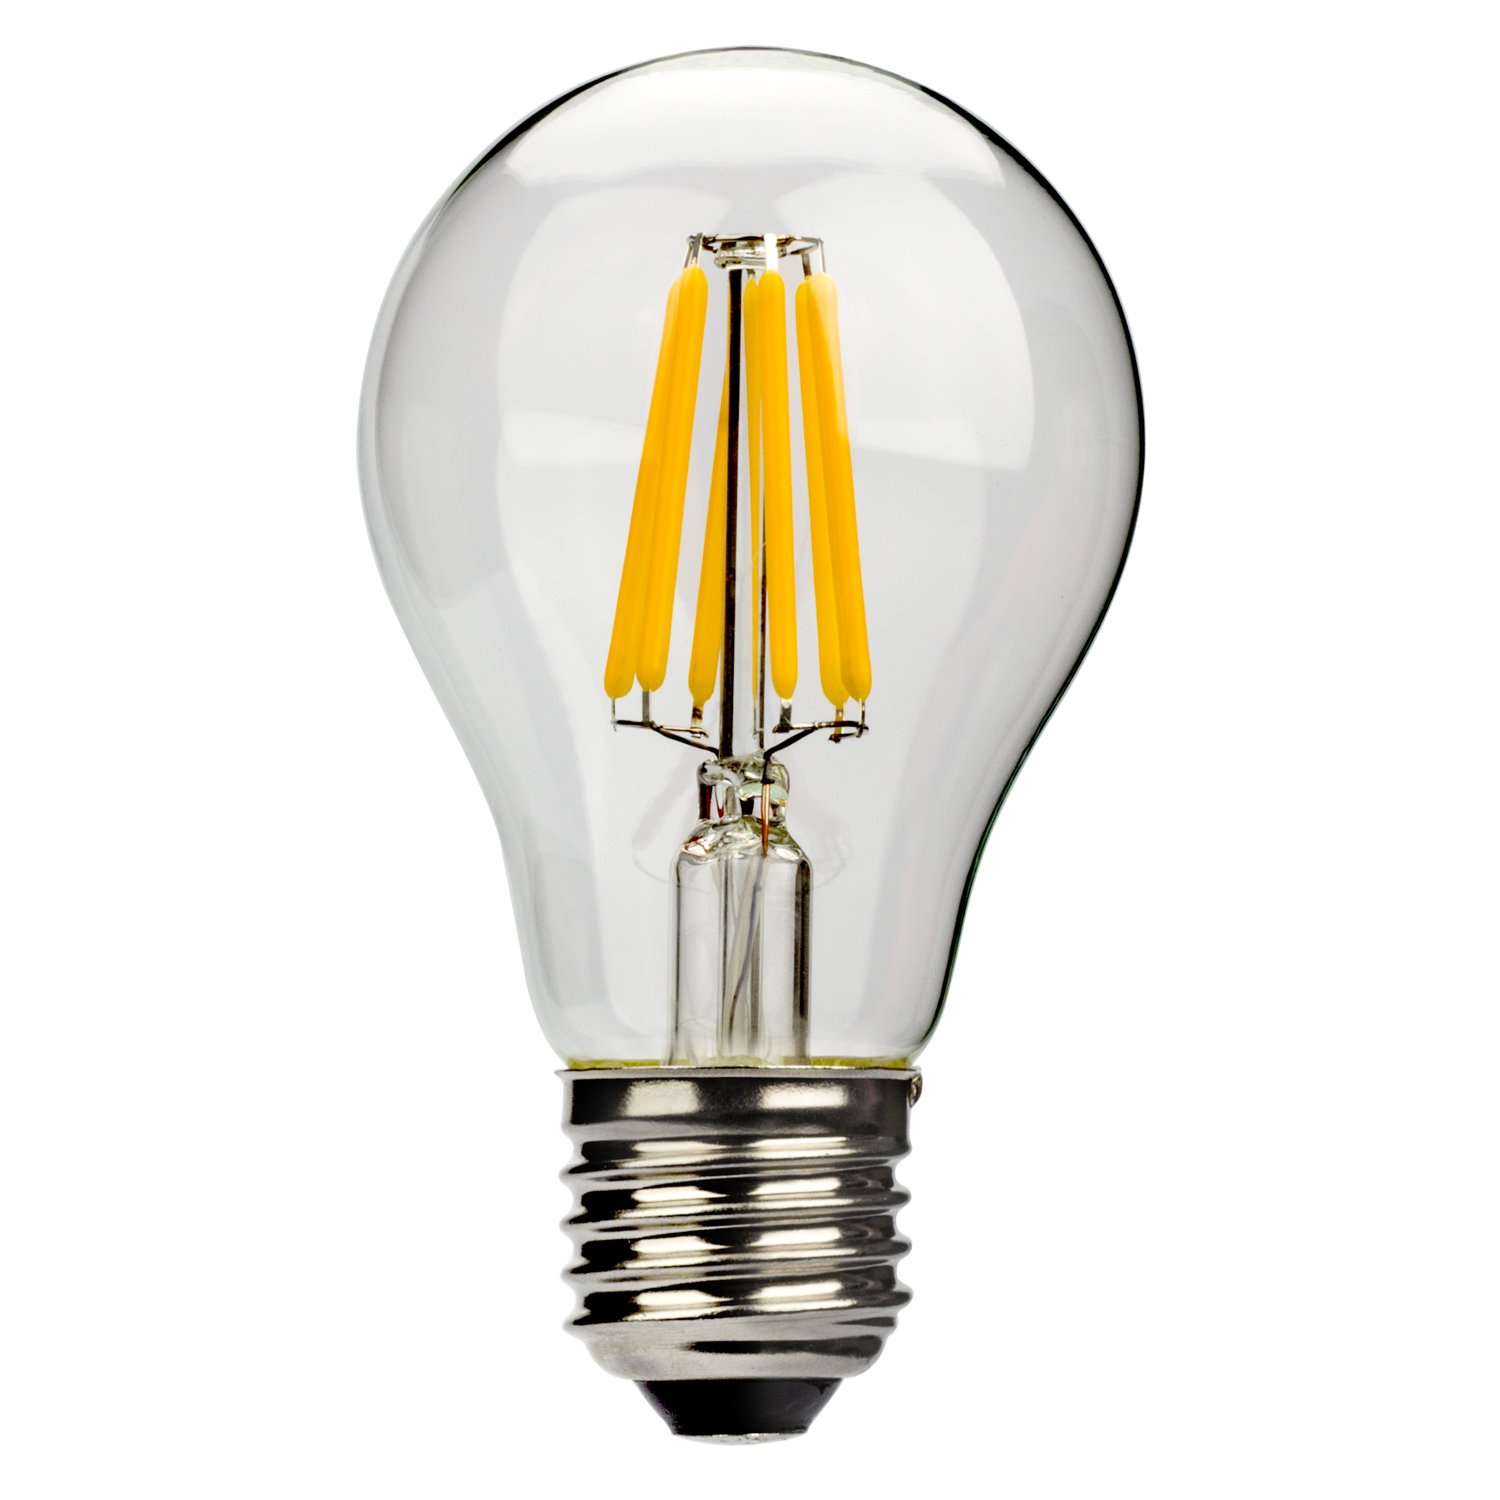 Leadleds LED Filament Edison Bulb, 6W (Equivalent to 60 Watt), E27 A60 LED Large Edison Screw Base, Non-Dimmable, Warm White 2700K - Pack of 6